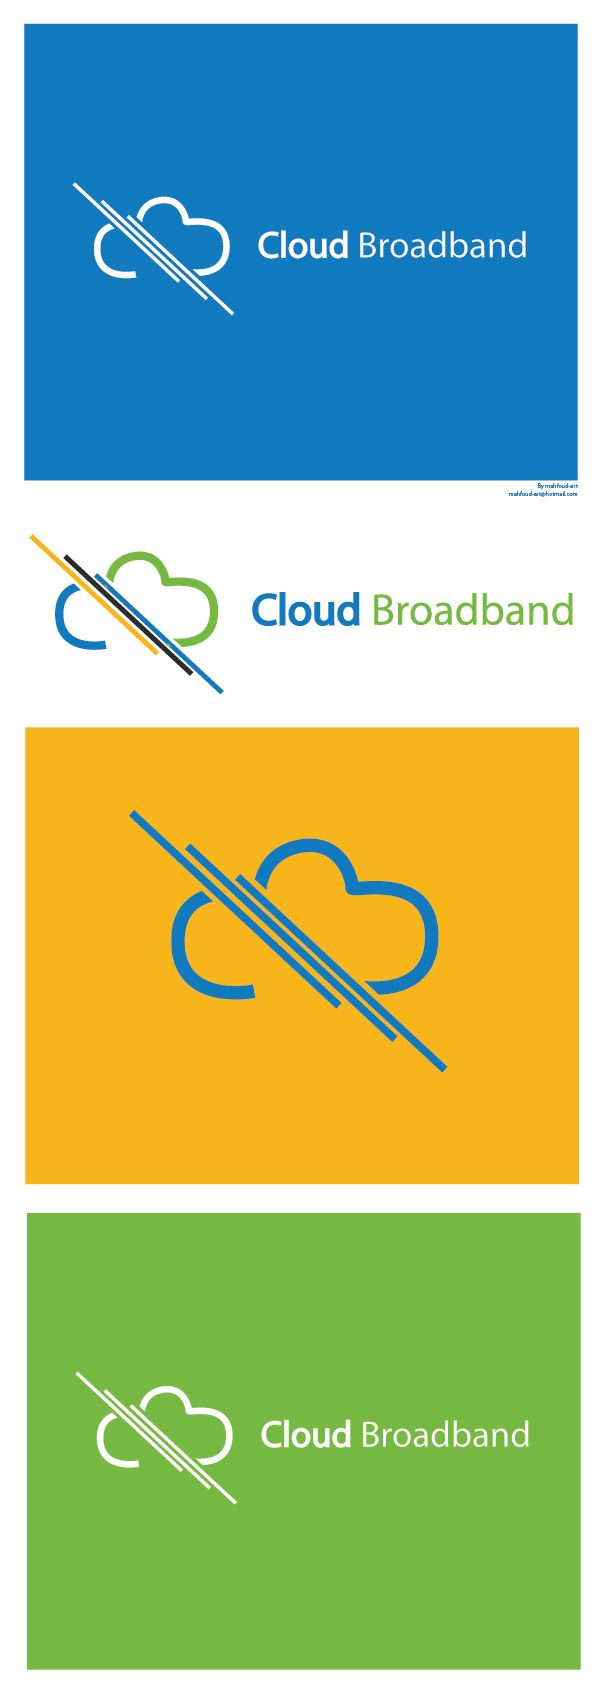 Cloud broadband, logo of a cloud separated by three Cables, logo is available for sale contact me if yo are interested, Mahfoud-art@hotmail.com